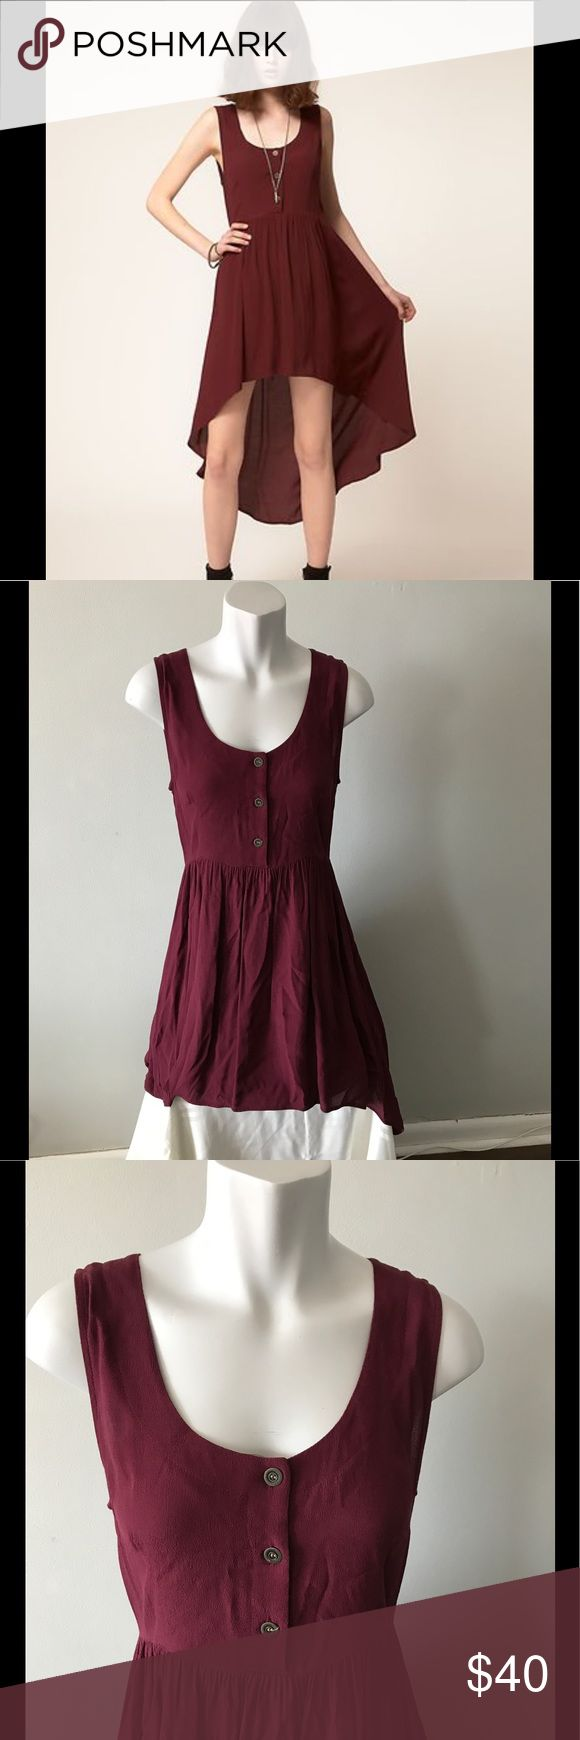 Evil Twin Burgundy High Low Hem Maxi Skirt Dress Gently pre loved condition. *Measured flat* Across shoulders: 14in. Across chest (under arm to under arm): 19in. Across waist: 16in. Top to bottom hem (back): 46in Evil Twin Dresses High Low